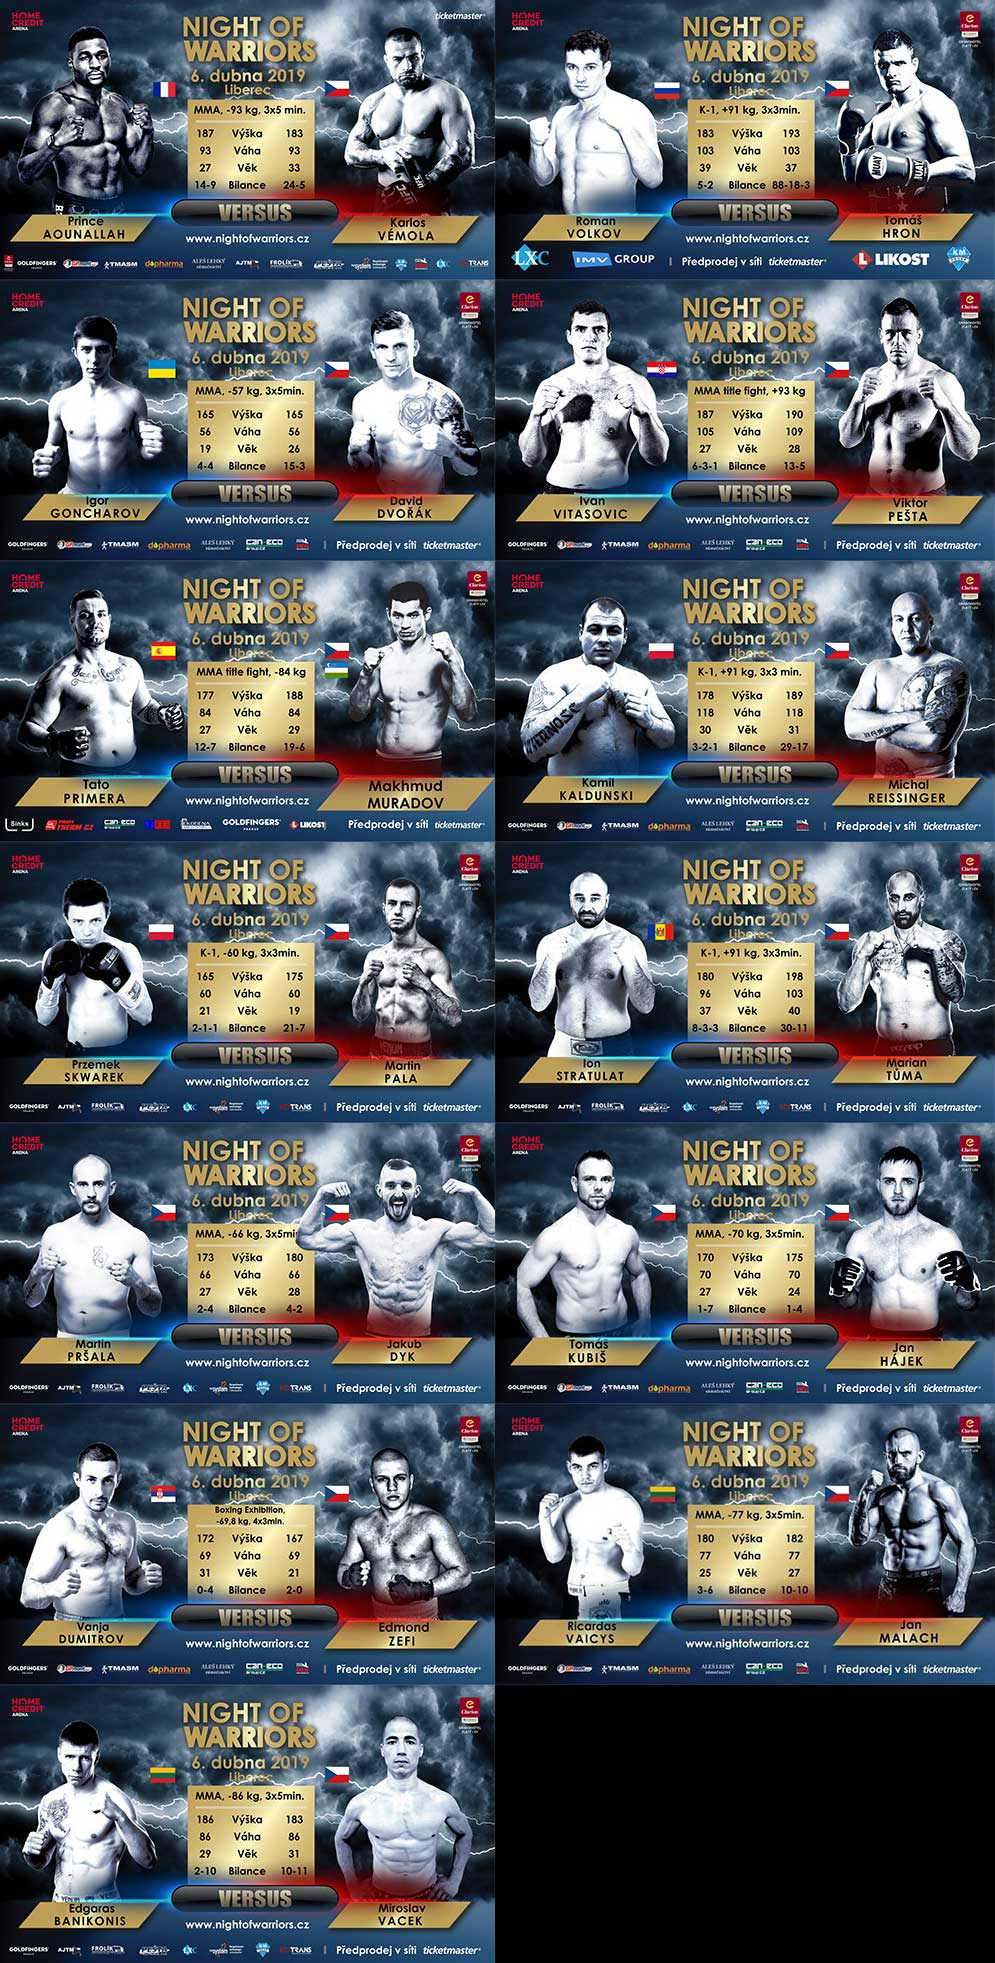 Night Of Warriors - Liberec 2019 - Fightcard (program)